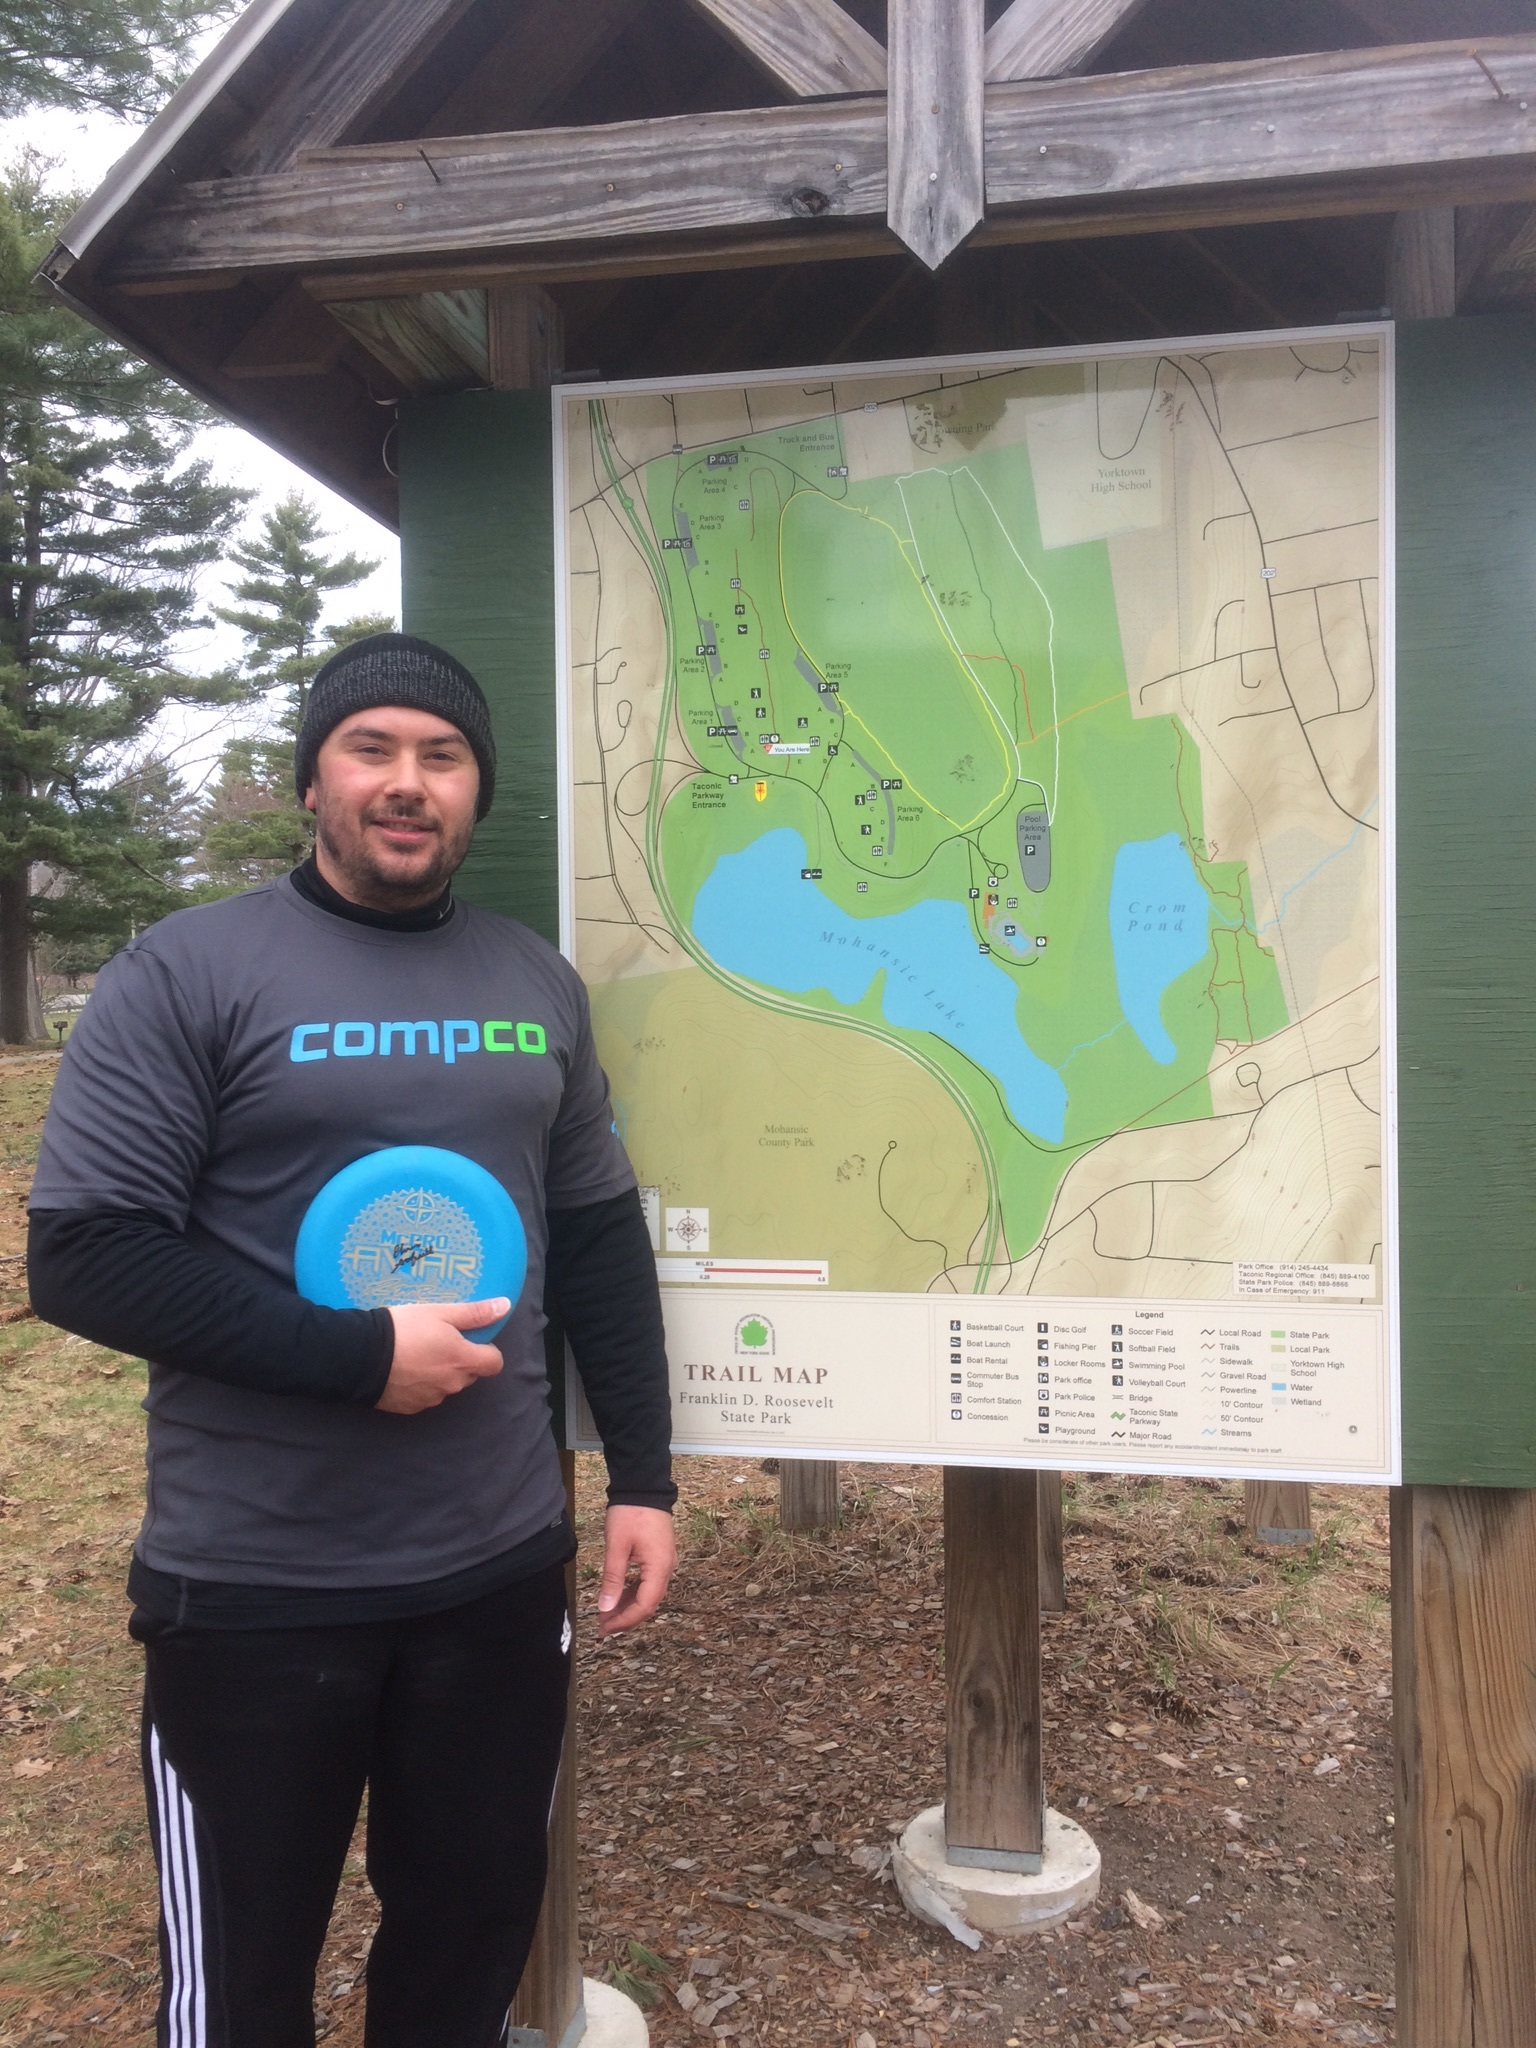 Chris Scofield (Pro disc golfer) sponsored and repping Compco in a tournament